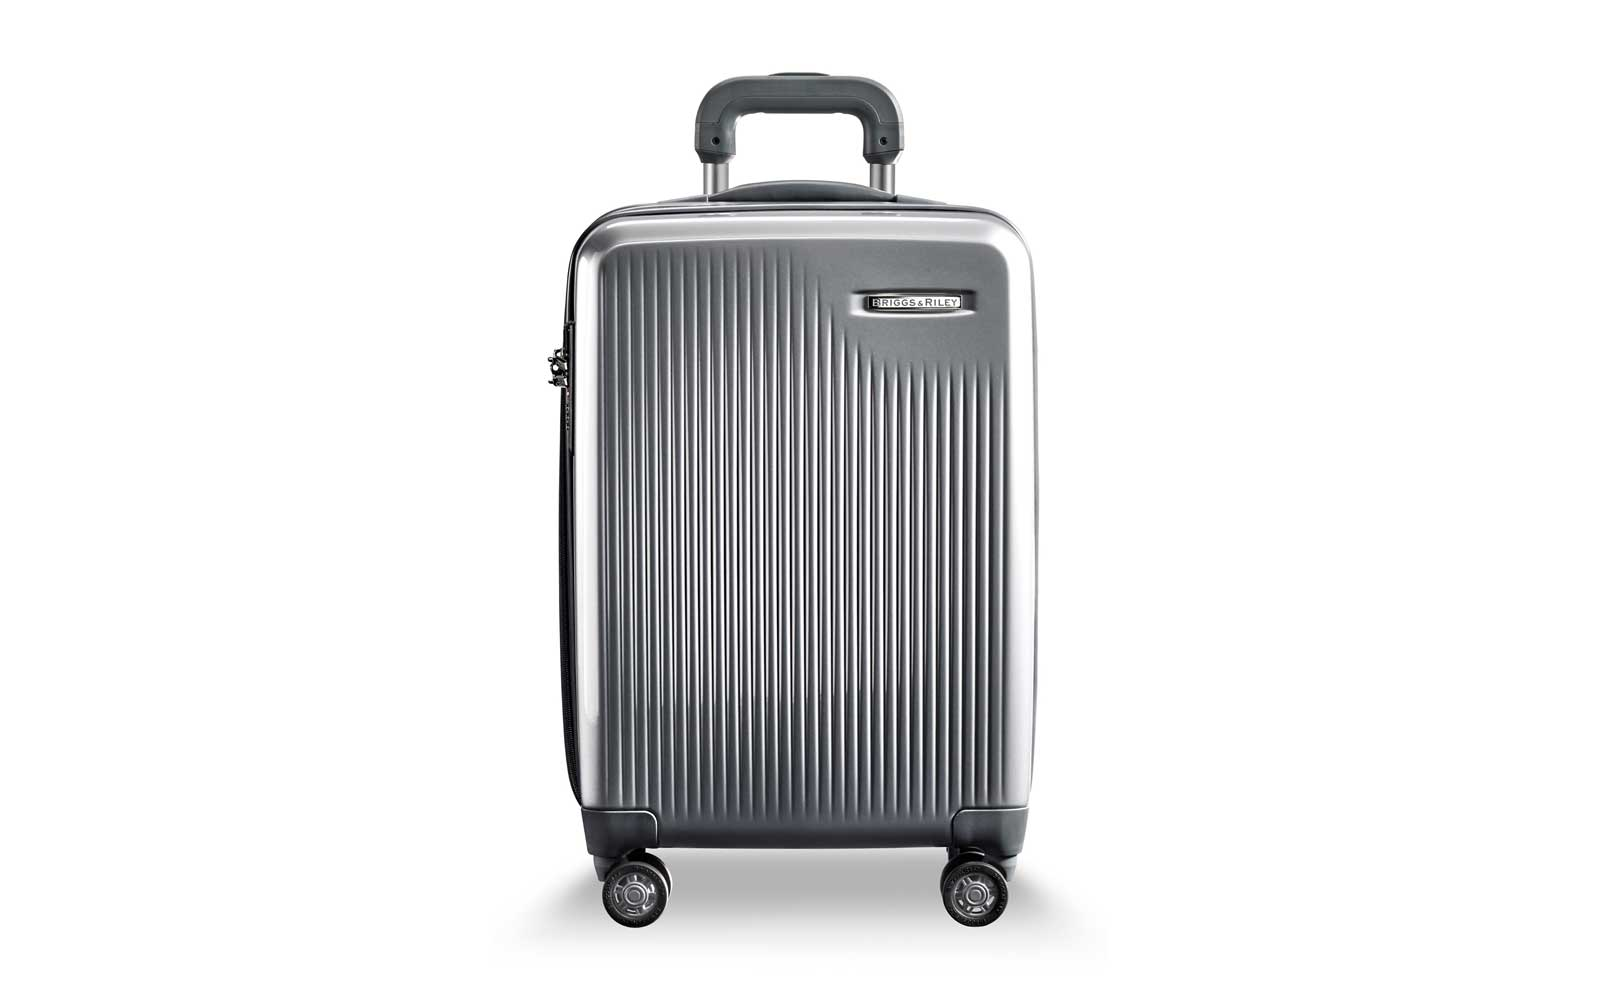 briggs riley luggage sale